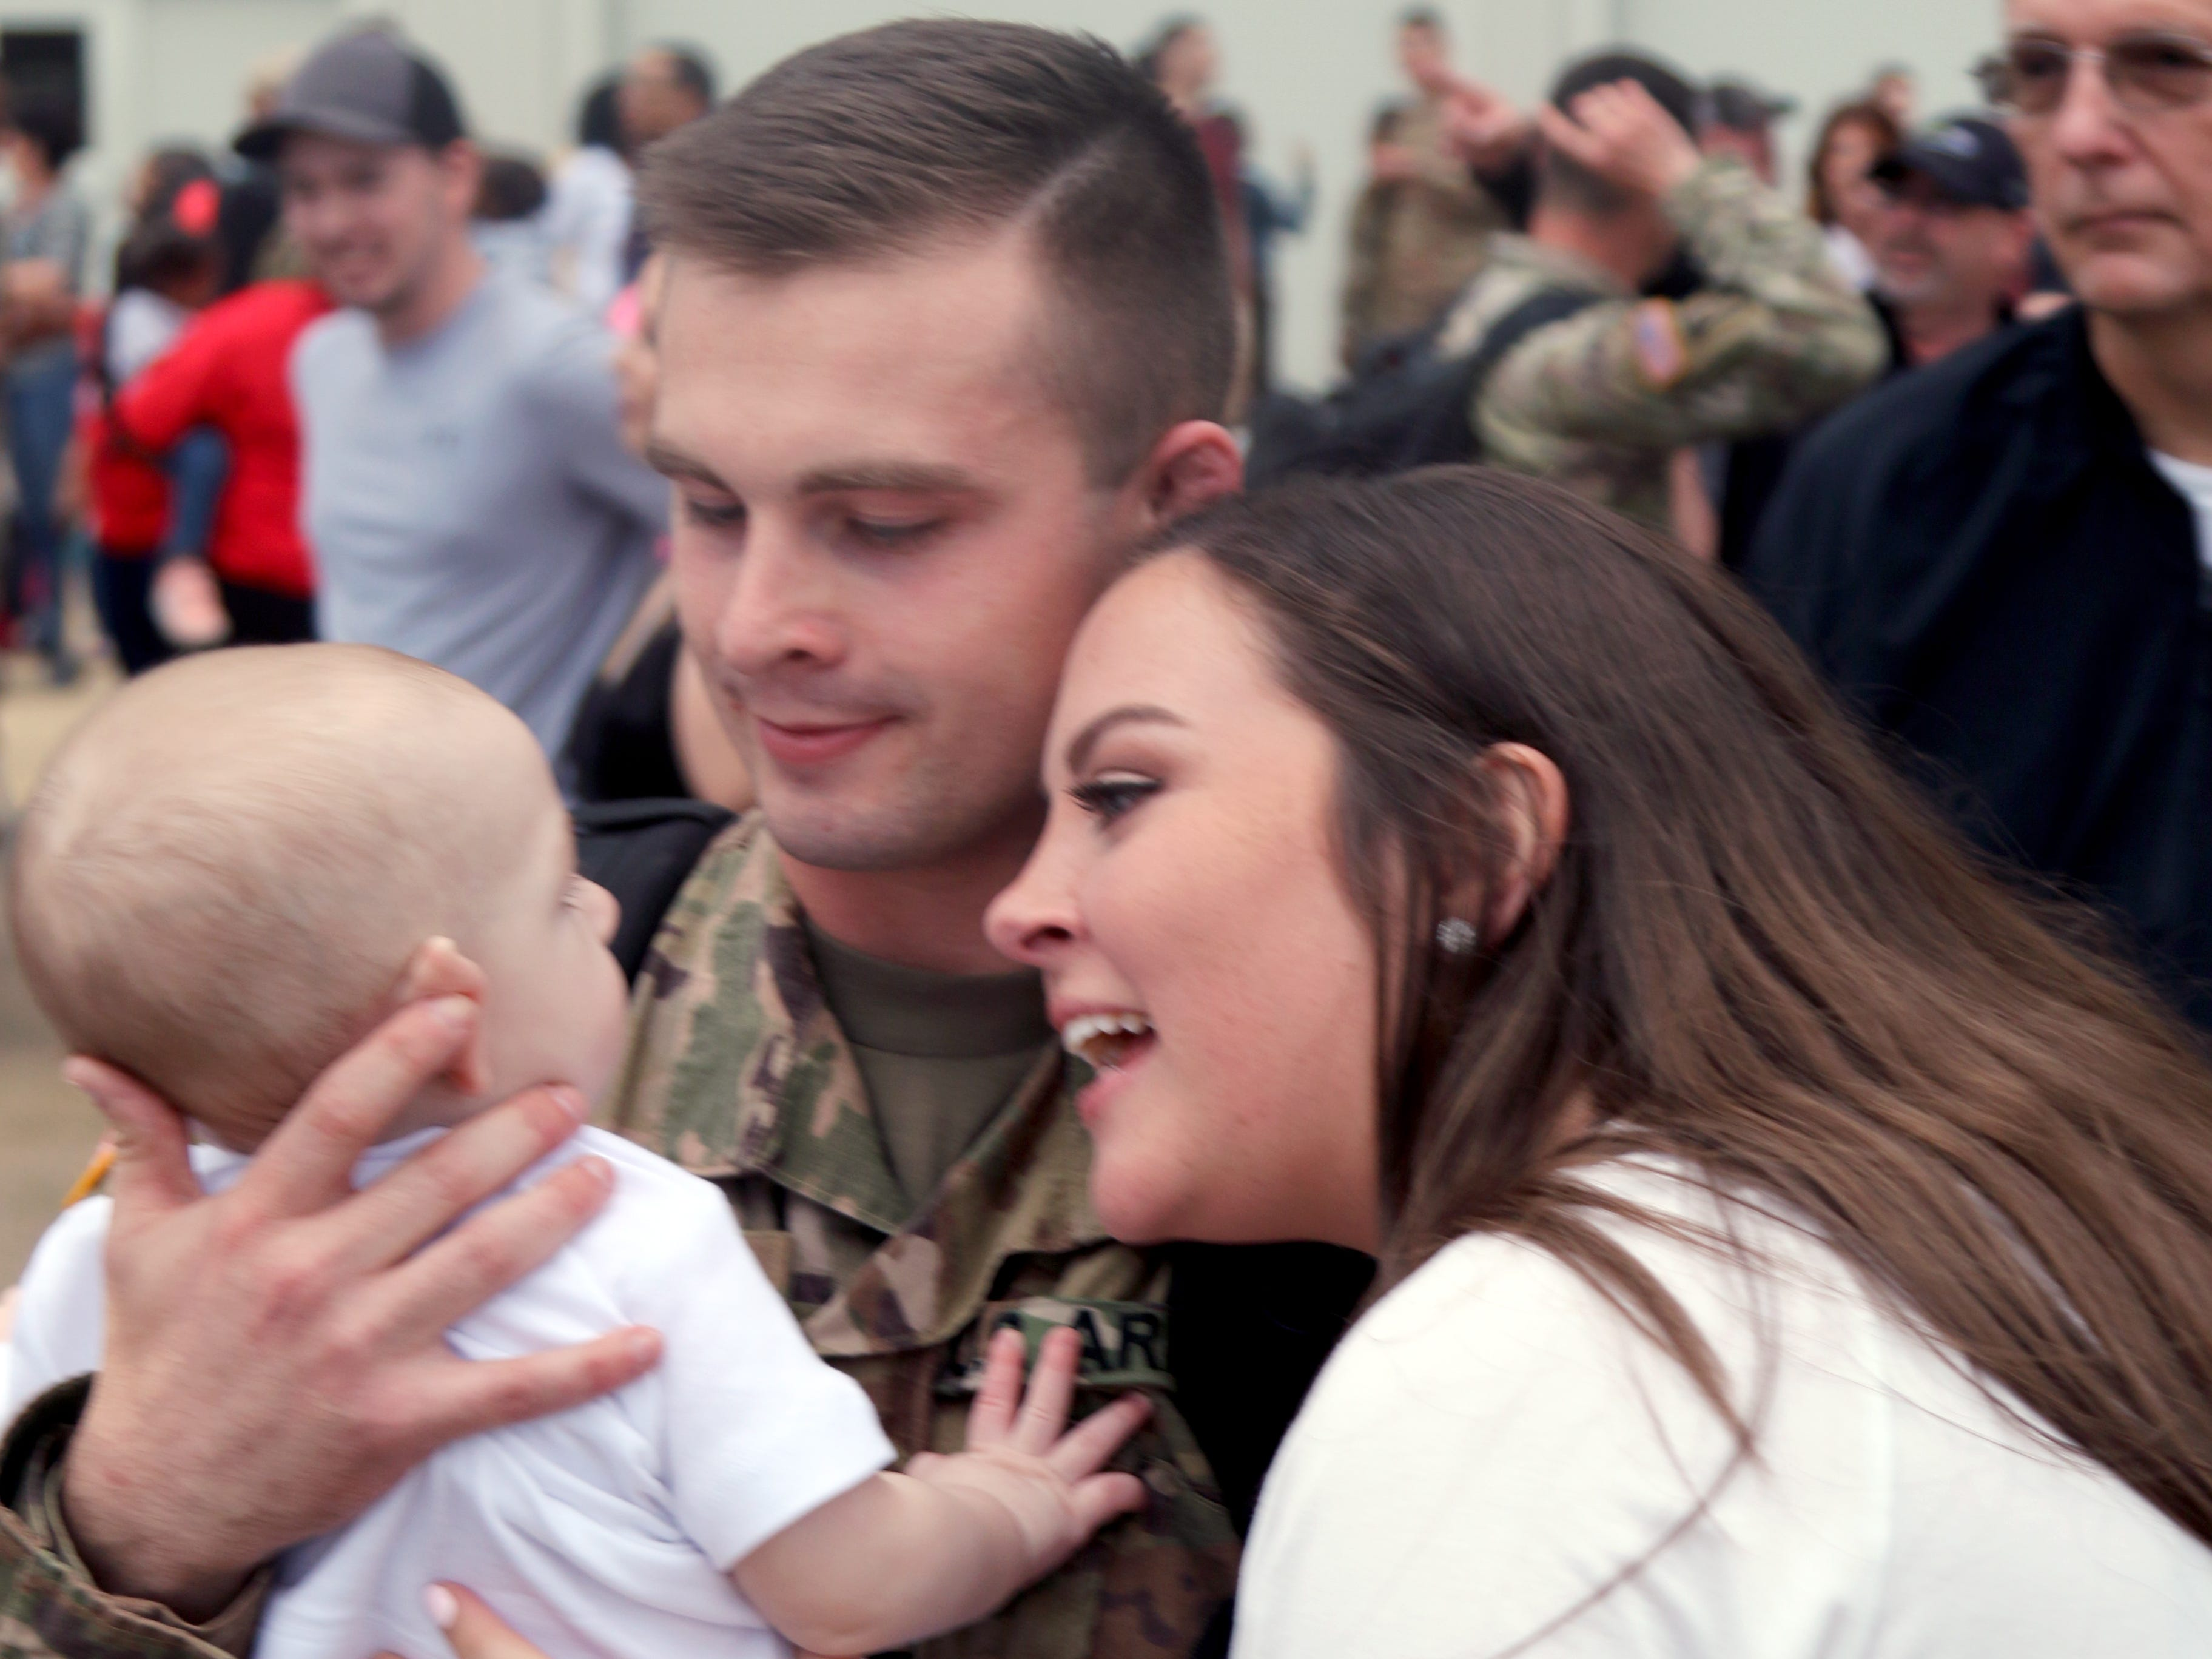 Spc. Robert Daniel Hankins, of 1st Battalion, 98th Cavalry Regiment, reunites with his wife, Kala, and son, Weston, at Thompson Field in Flowood, Mississippi, Feb. 27, 2019. Hankins, of Tupelo, was part of a contingent of the Mississippi Army National Guard's 155th Armored Brigade Combat Team returning home after serving in Kuwait in support of Operation Spartan Shield.